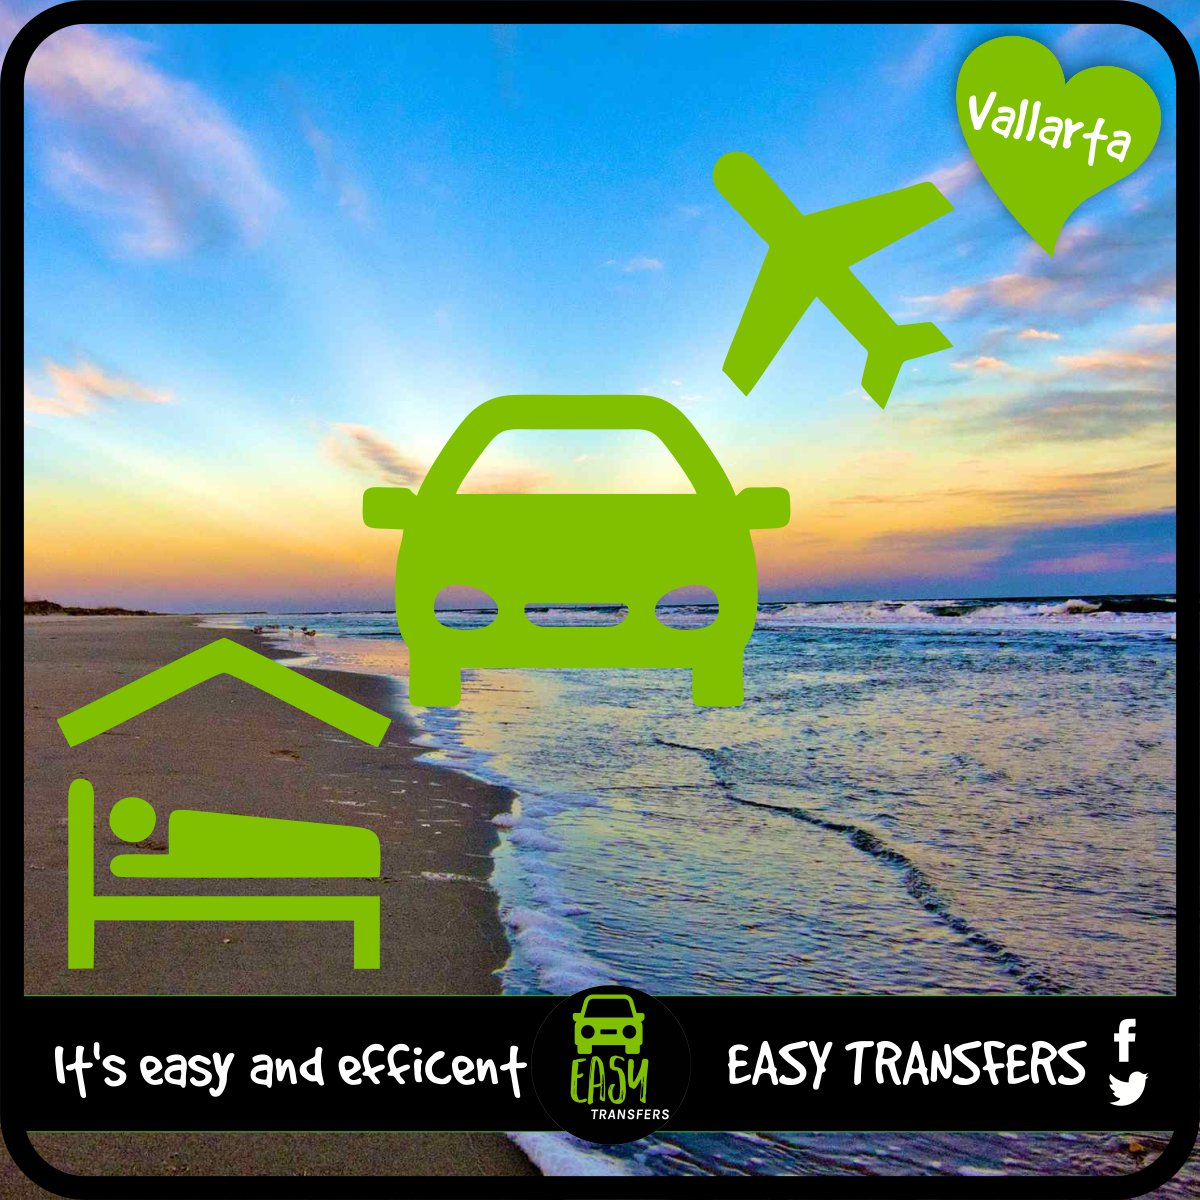 EasyTransfersVallarta's photo on #MeCaíDe